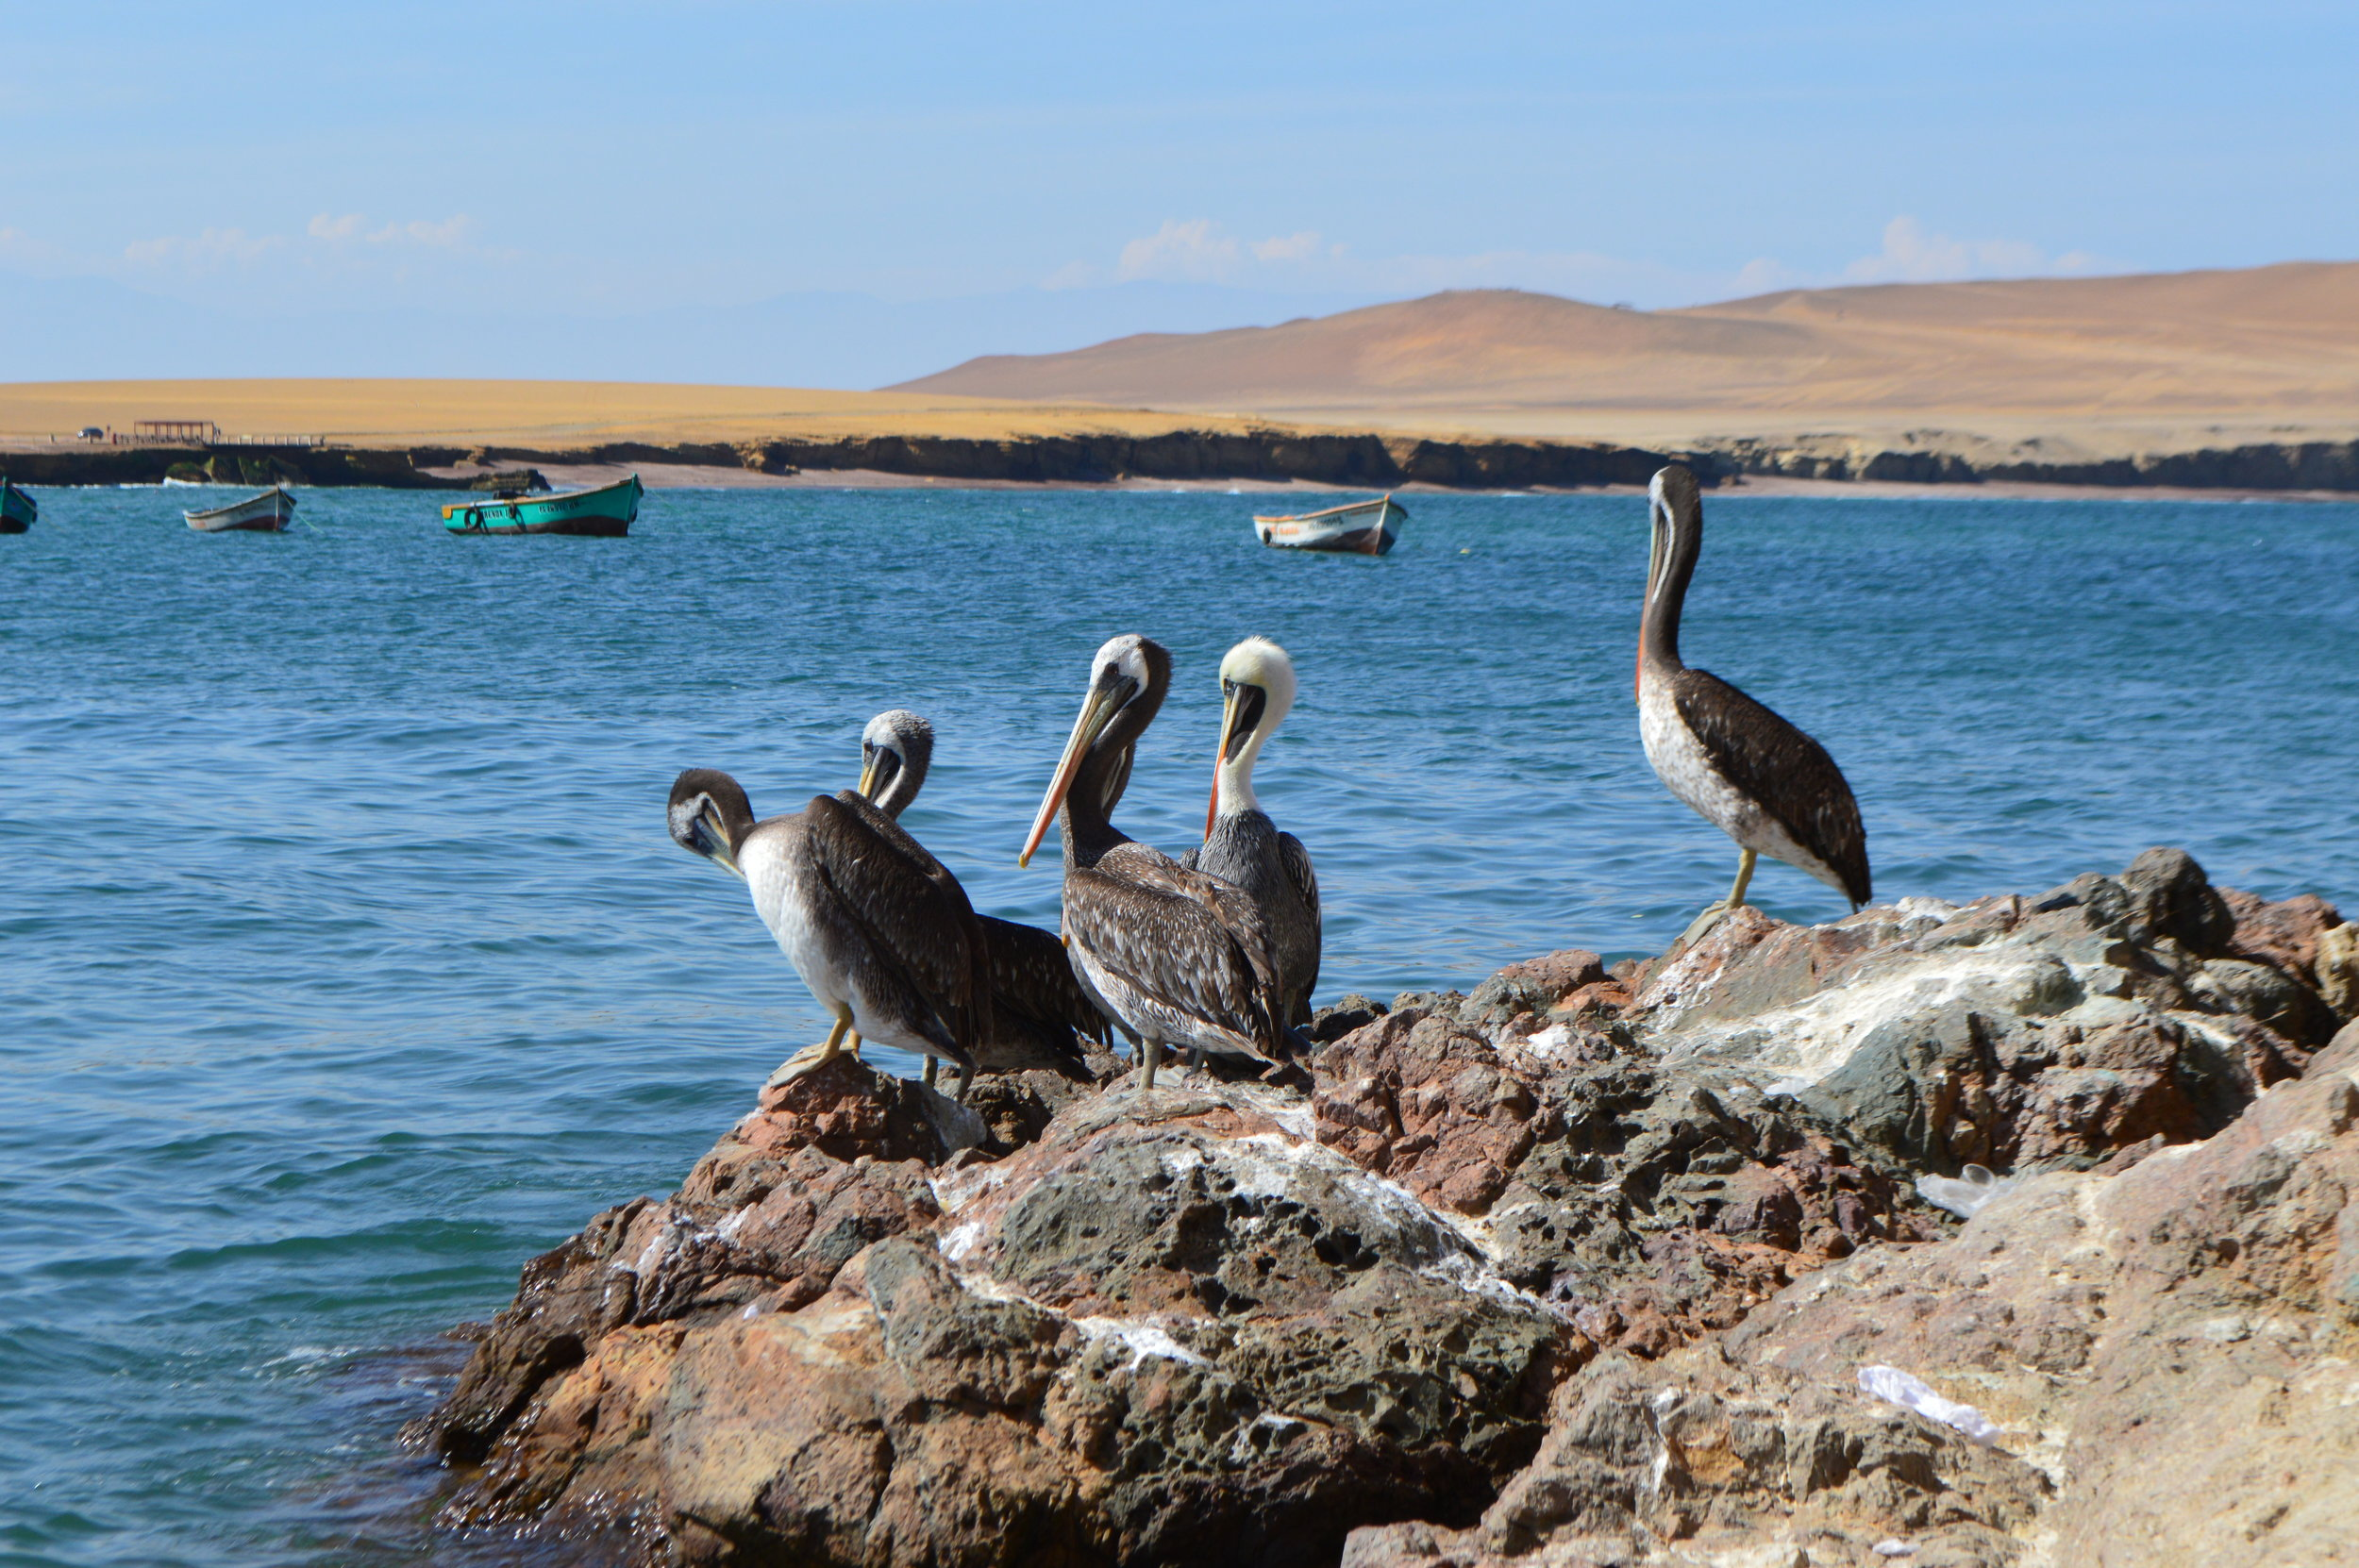 Pelicans perched on rocks outside the restaurant